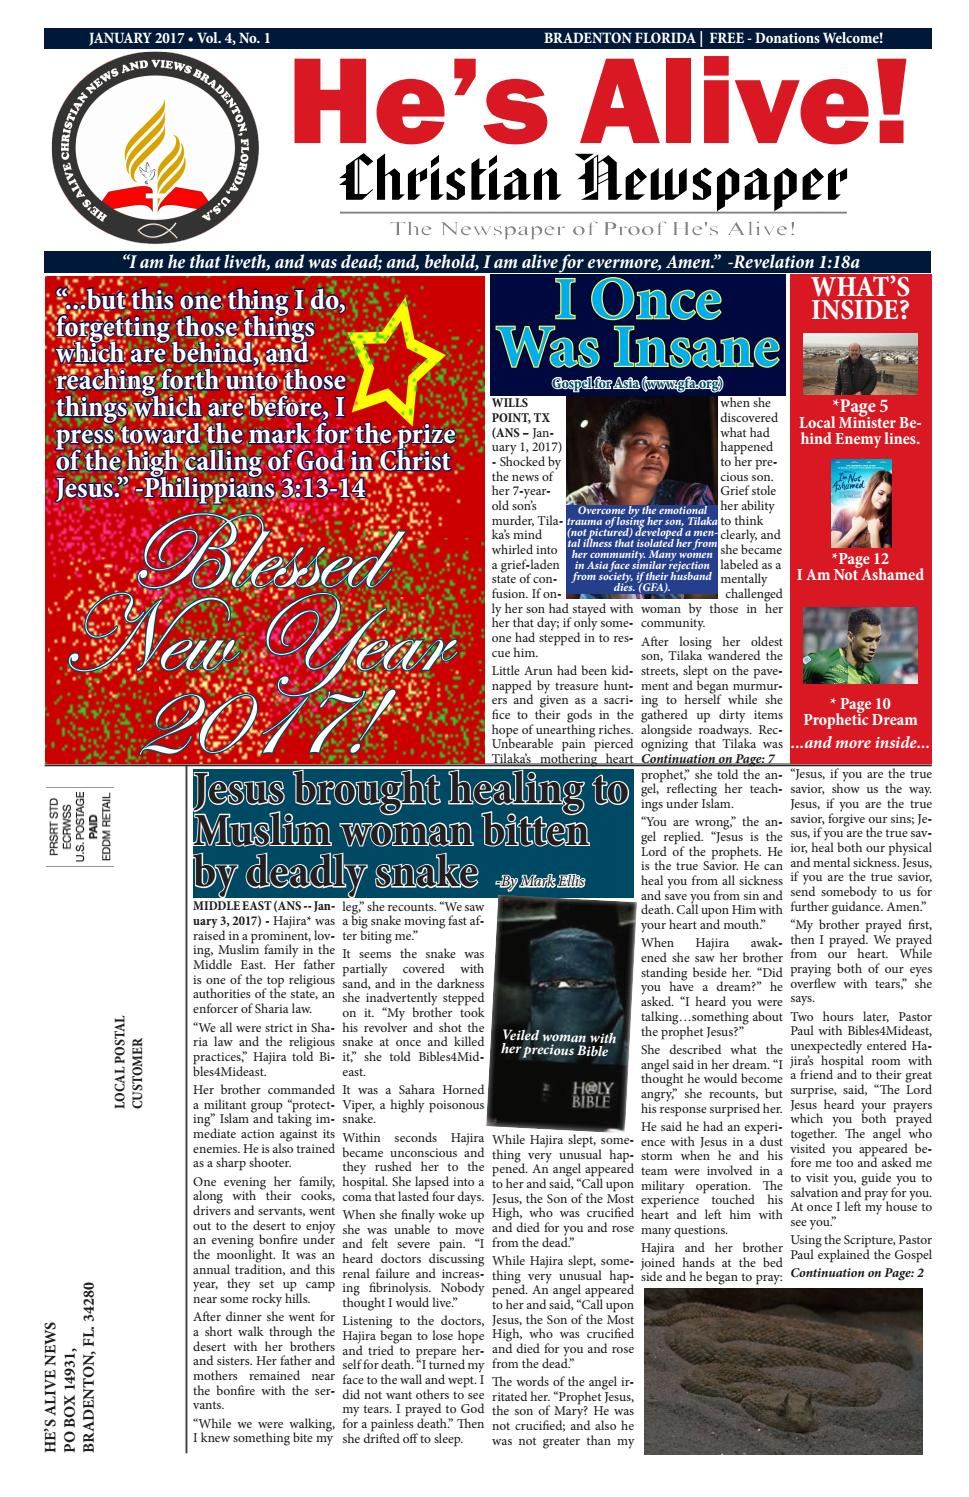 HE'S ALIVE CHRISTIAN NEWS AND VIEWS -January 2017 edition by